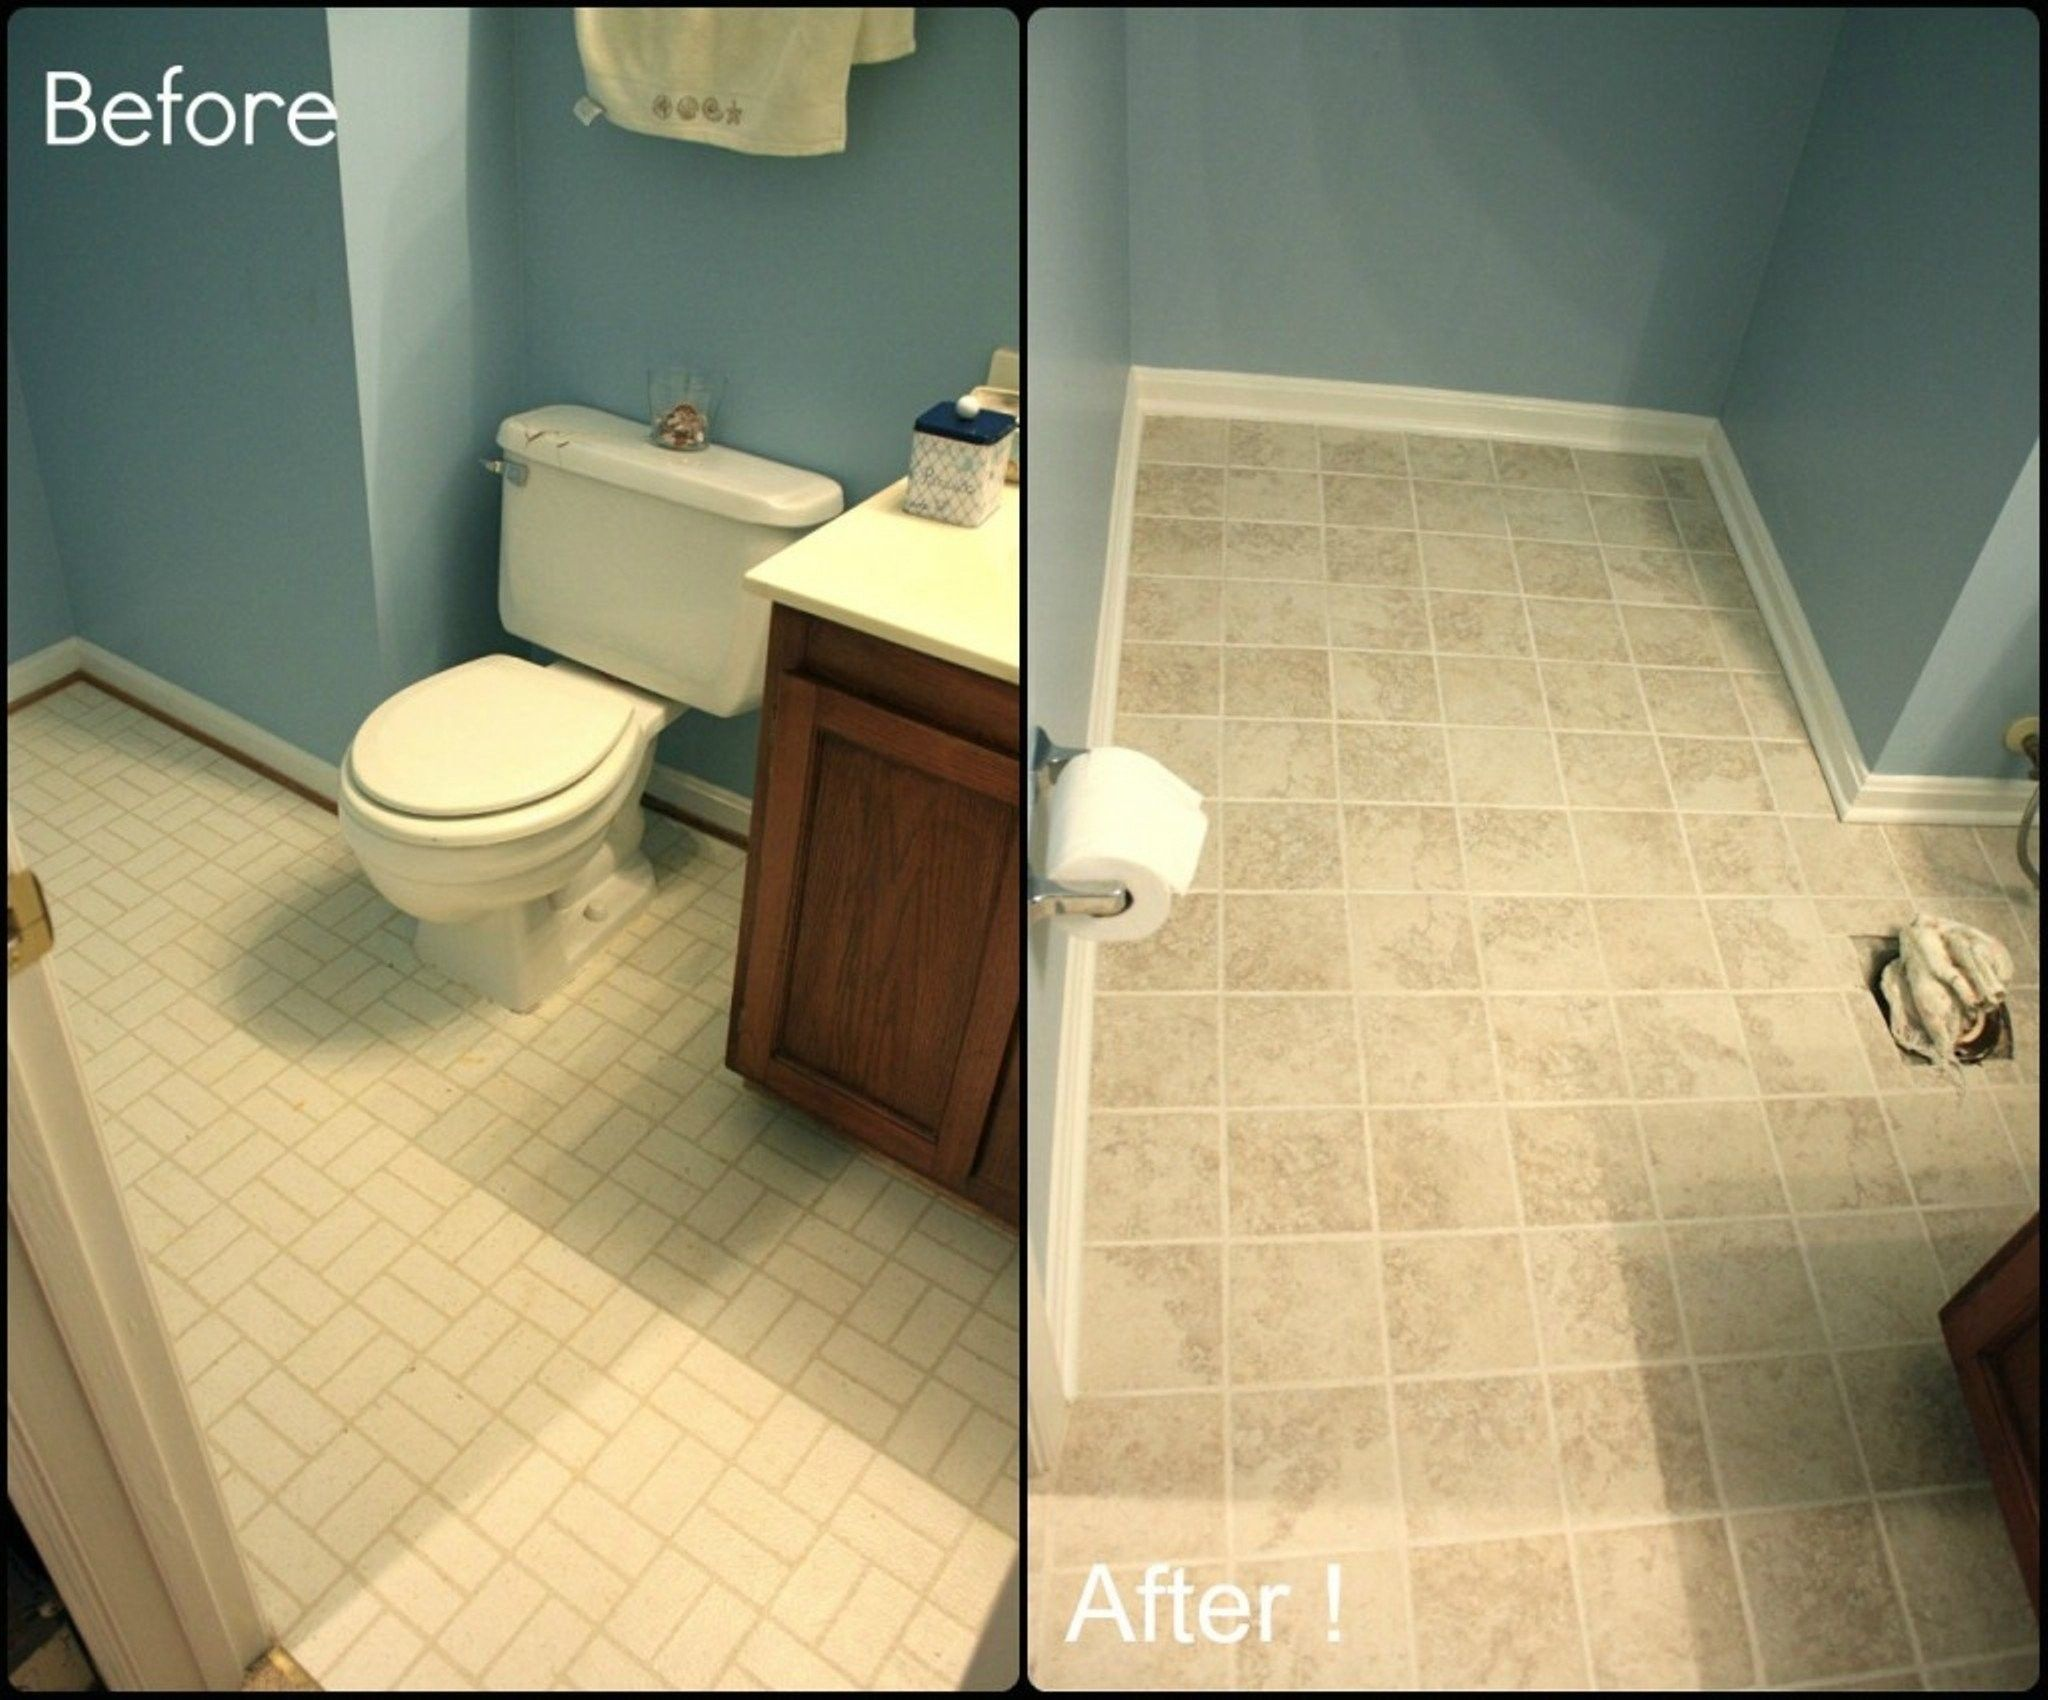 Painting bathroom floor tile before and after bathroom ideas painting bathroom floor tile before and after dailygadgetfo Images